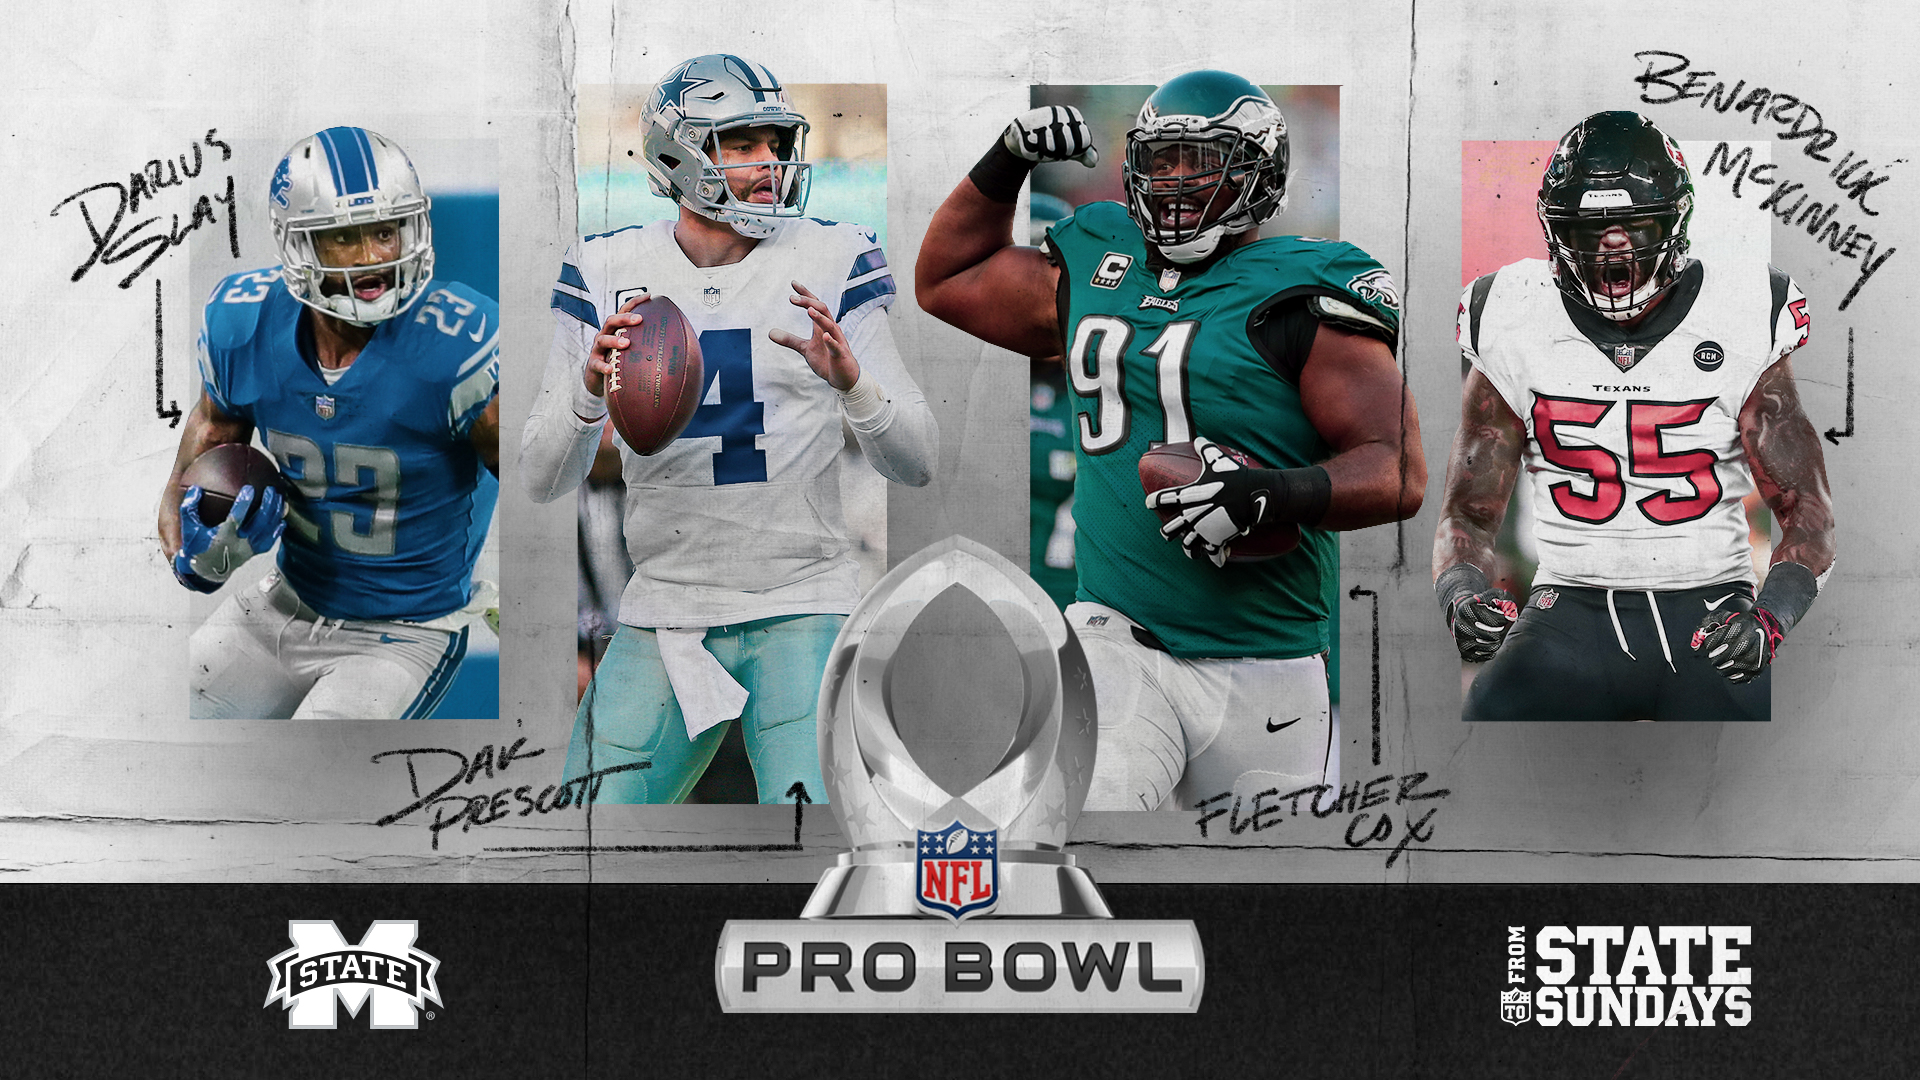 new products 587d4 fd5f4 Bulldogs Boast School-Record Pro Bowl Selections ...